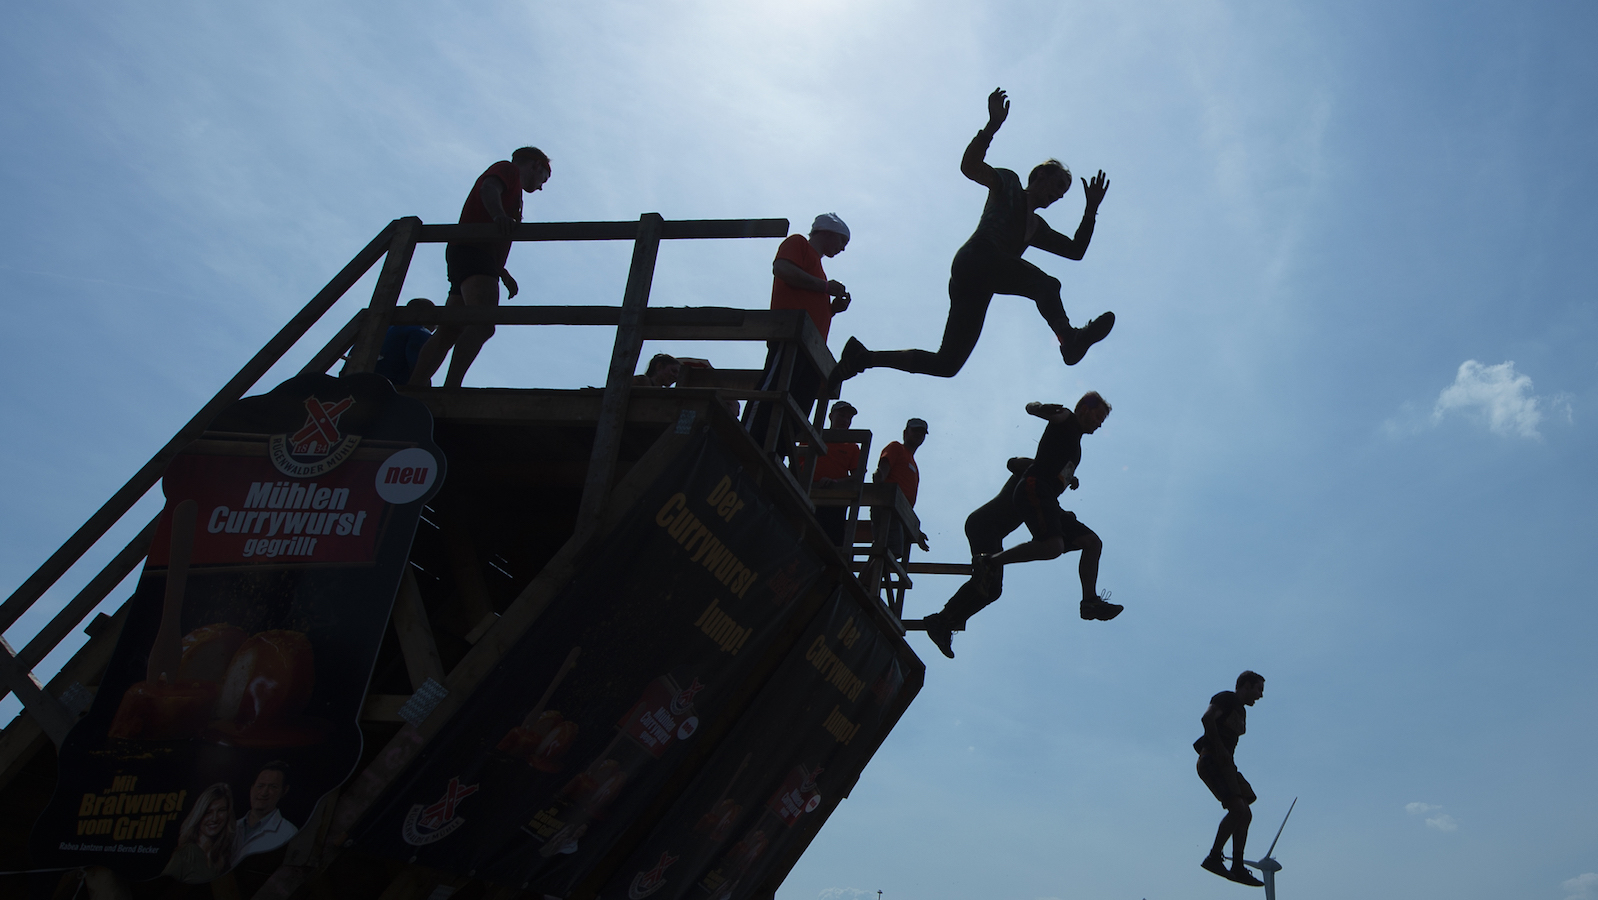 Psychological safety is crucial for great teamwork—but it has a dark